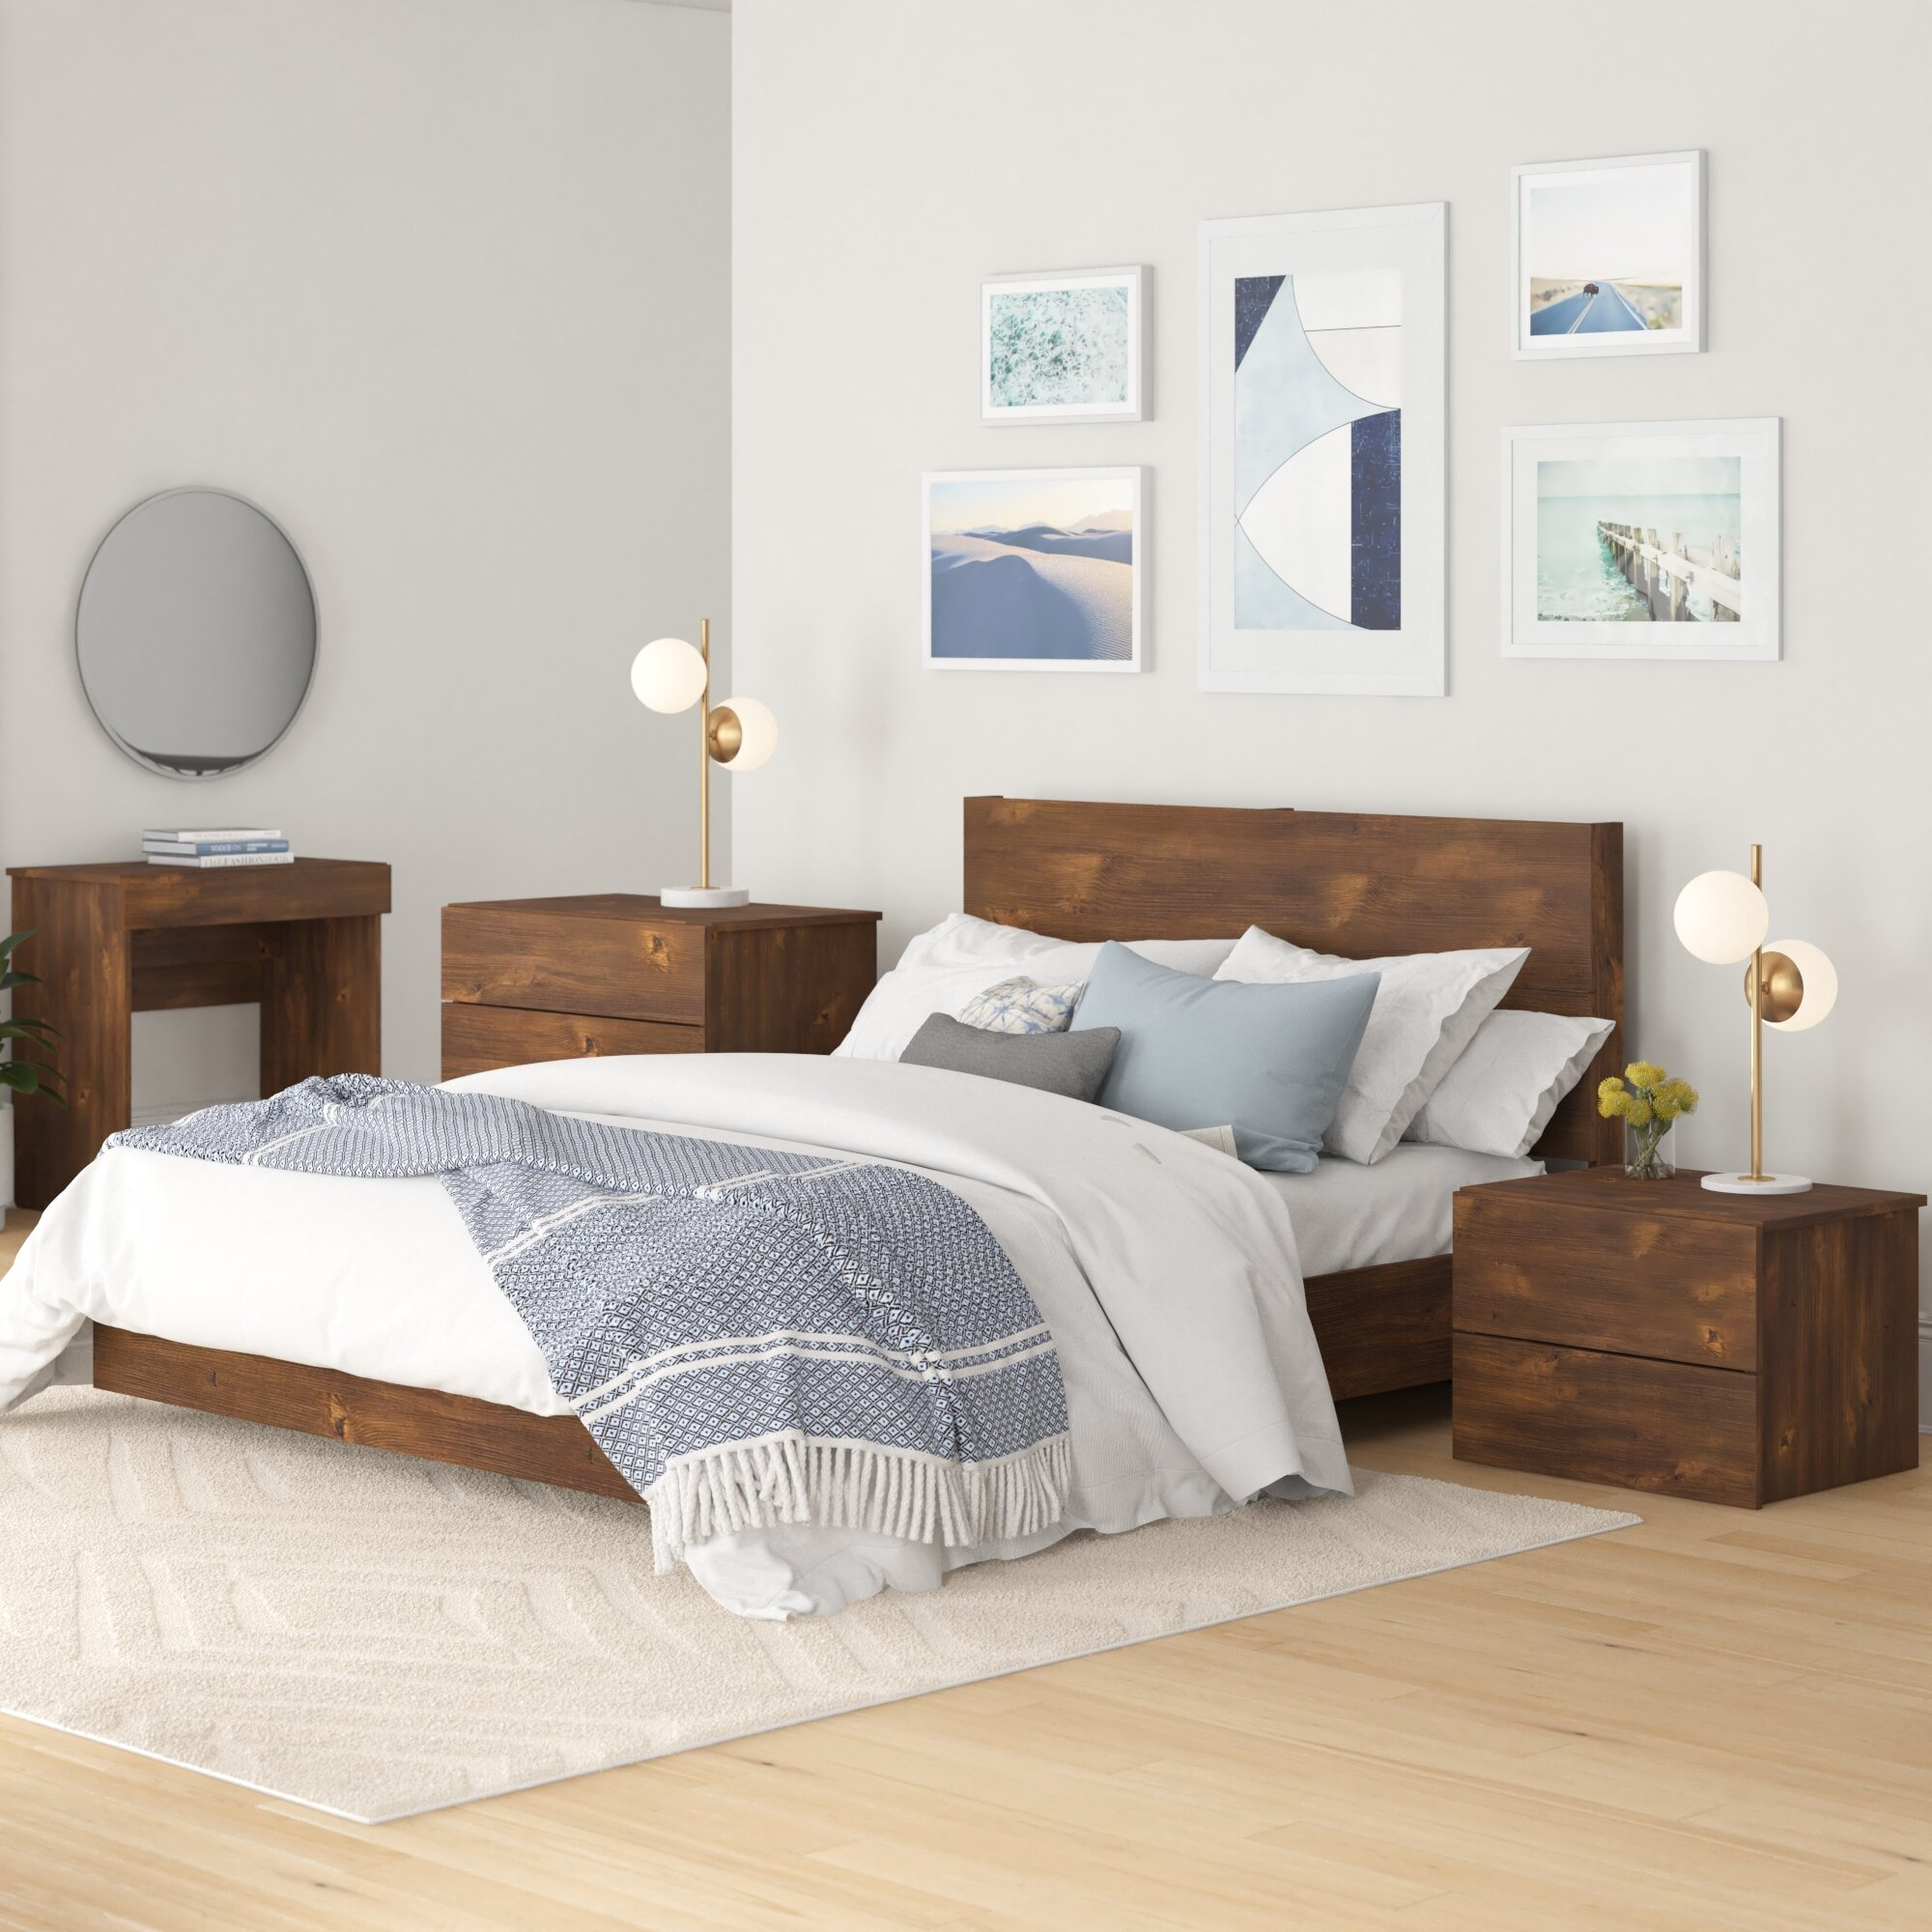 9 Easy Accommodating Guest Room Ideas Wayfair